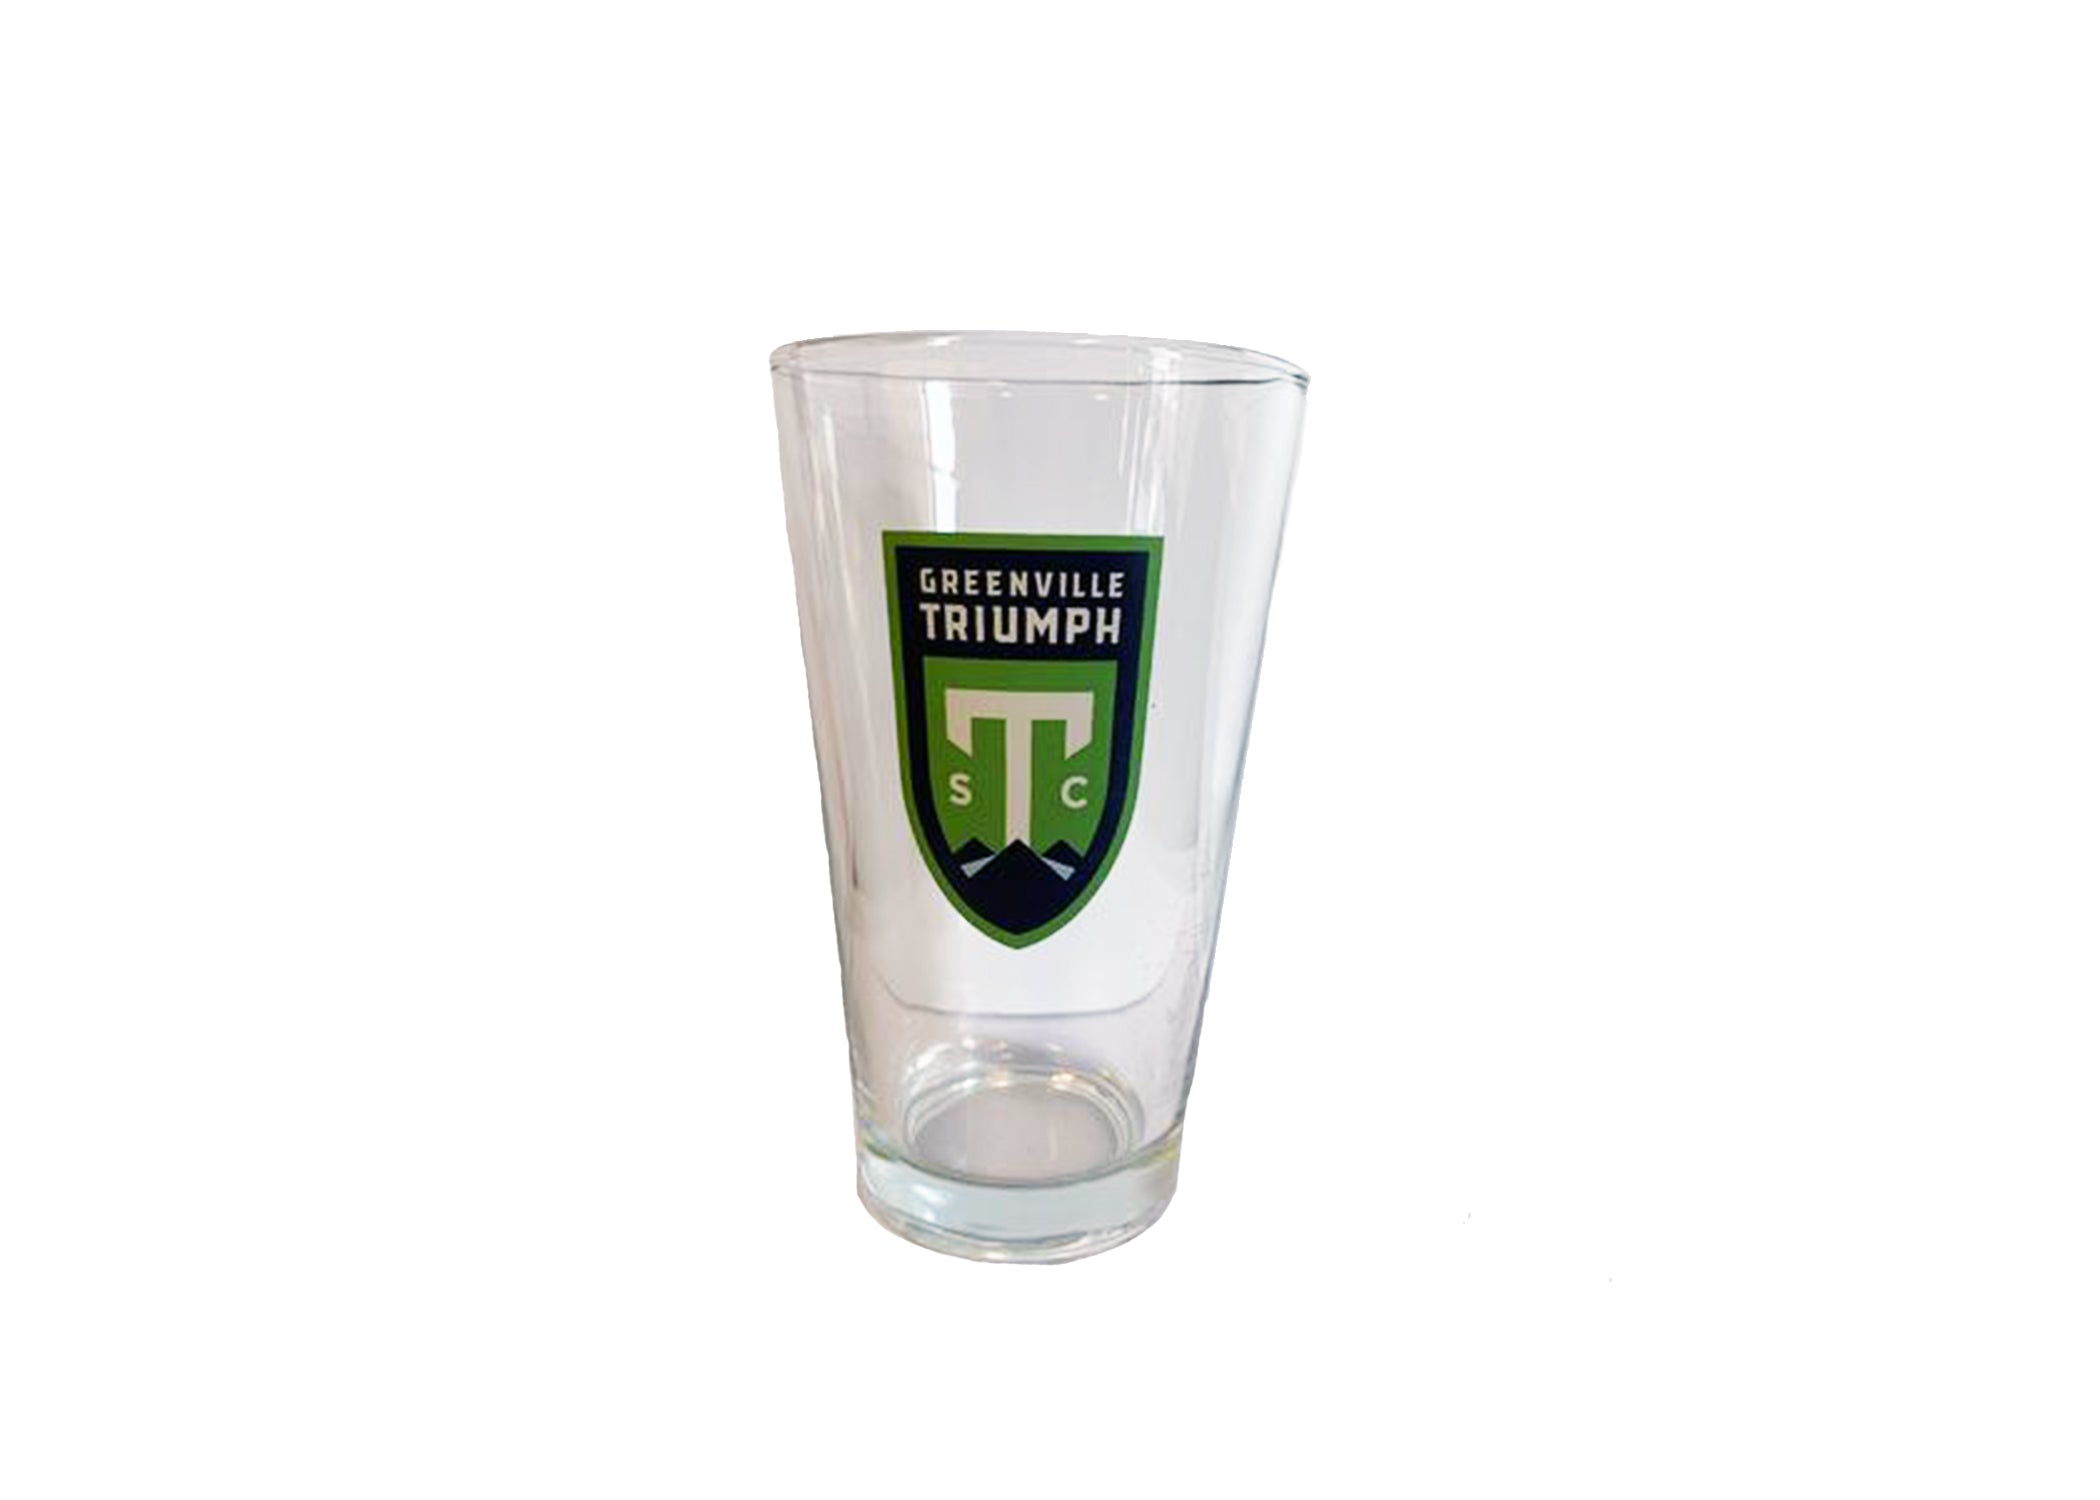 Greenville Triumph Pint Glass